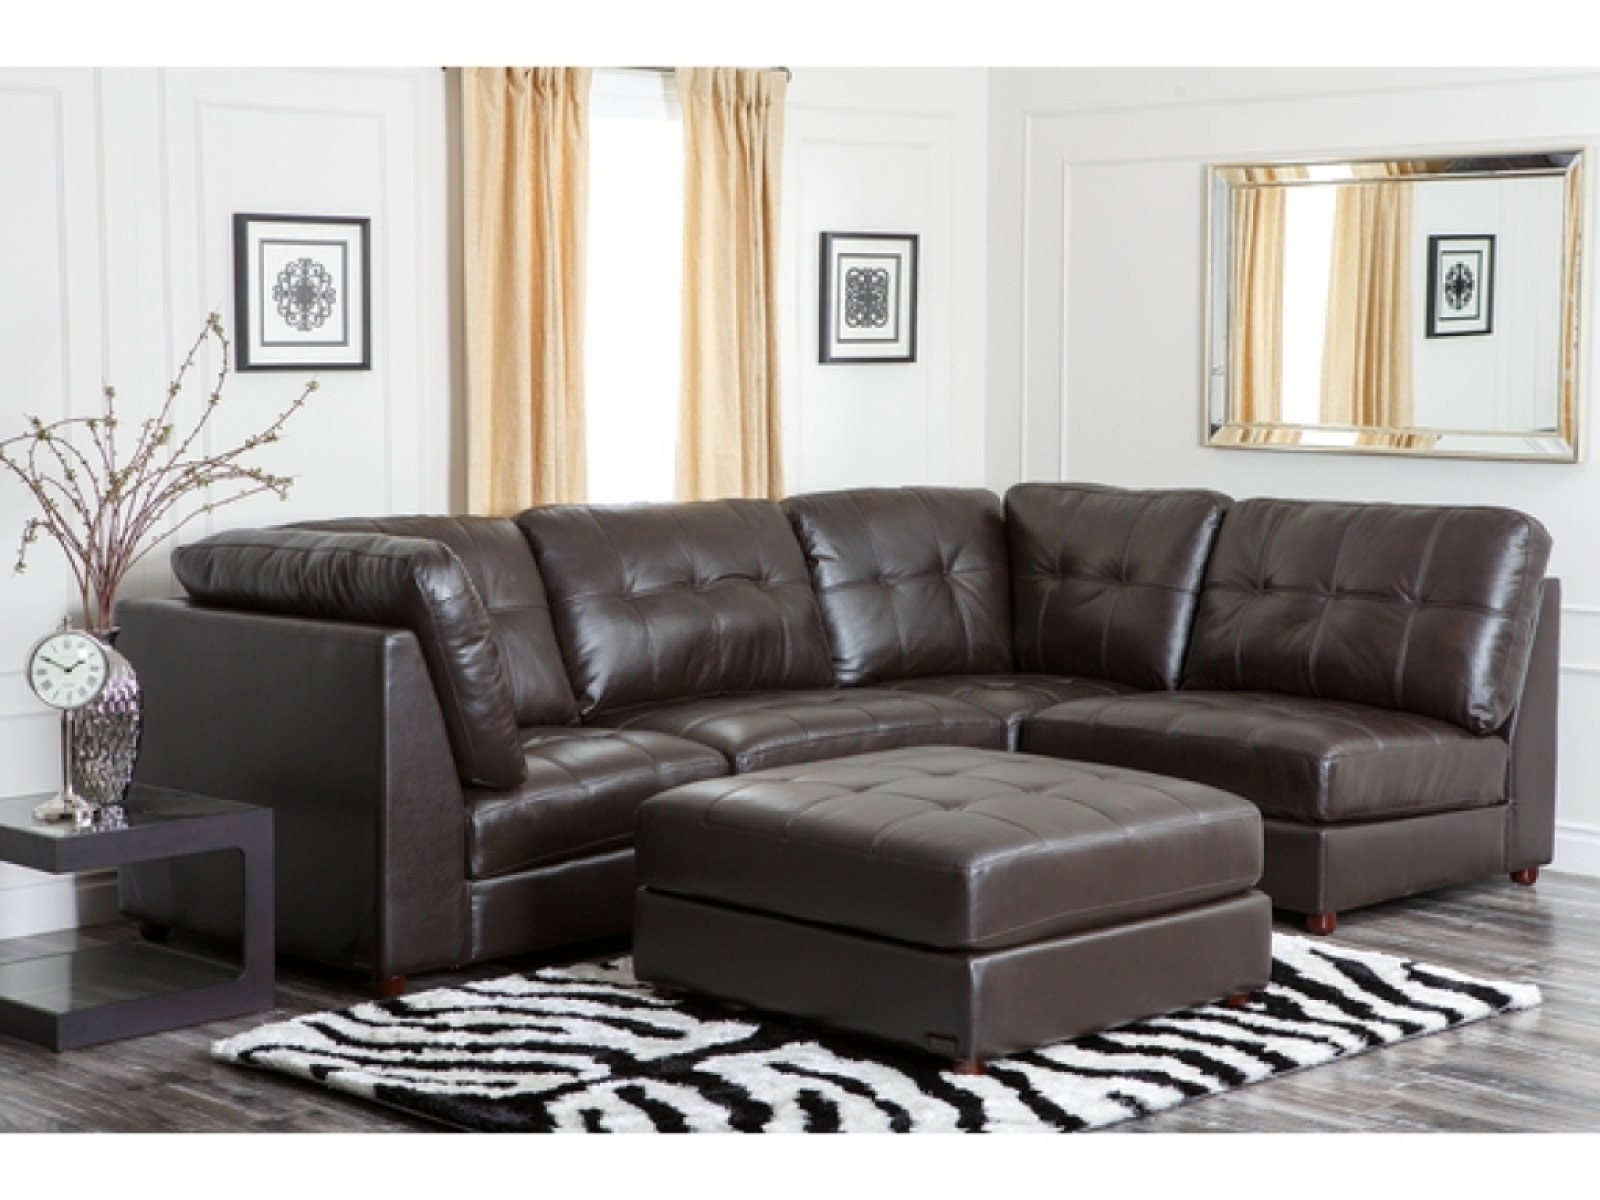 Trendy Sectional Sofas That Can Be Rearranged Regarding ▻ Sofa : 15 3058702 Poster P 1 A Modular Sofa That Can Rearrange (View 6 of 20)